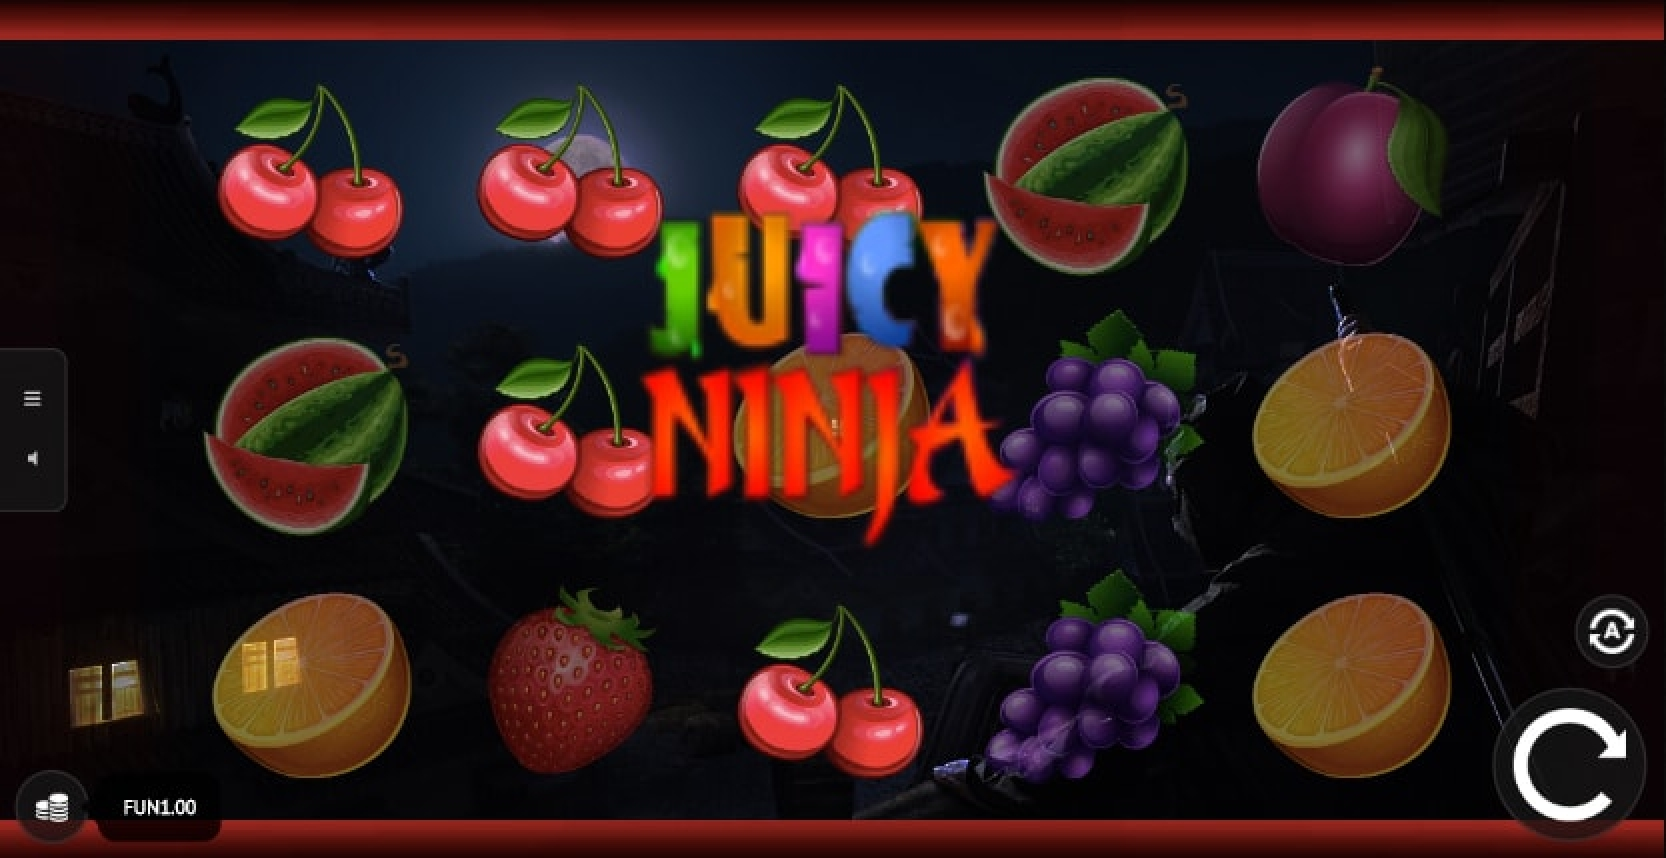 The Juicy Ninja Online Slot Demo Game by 1x2 Gaming